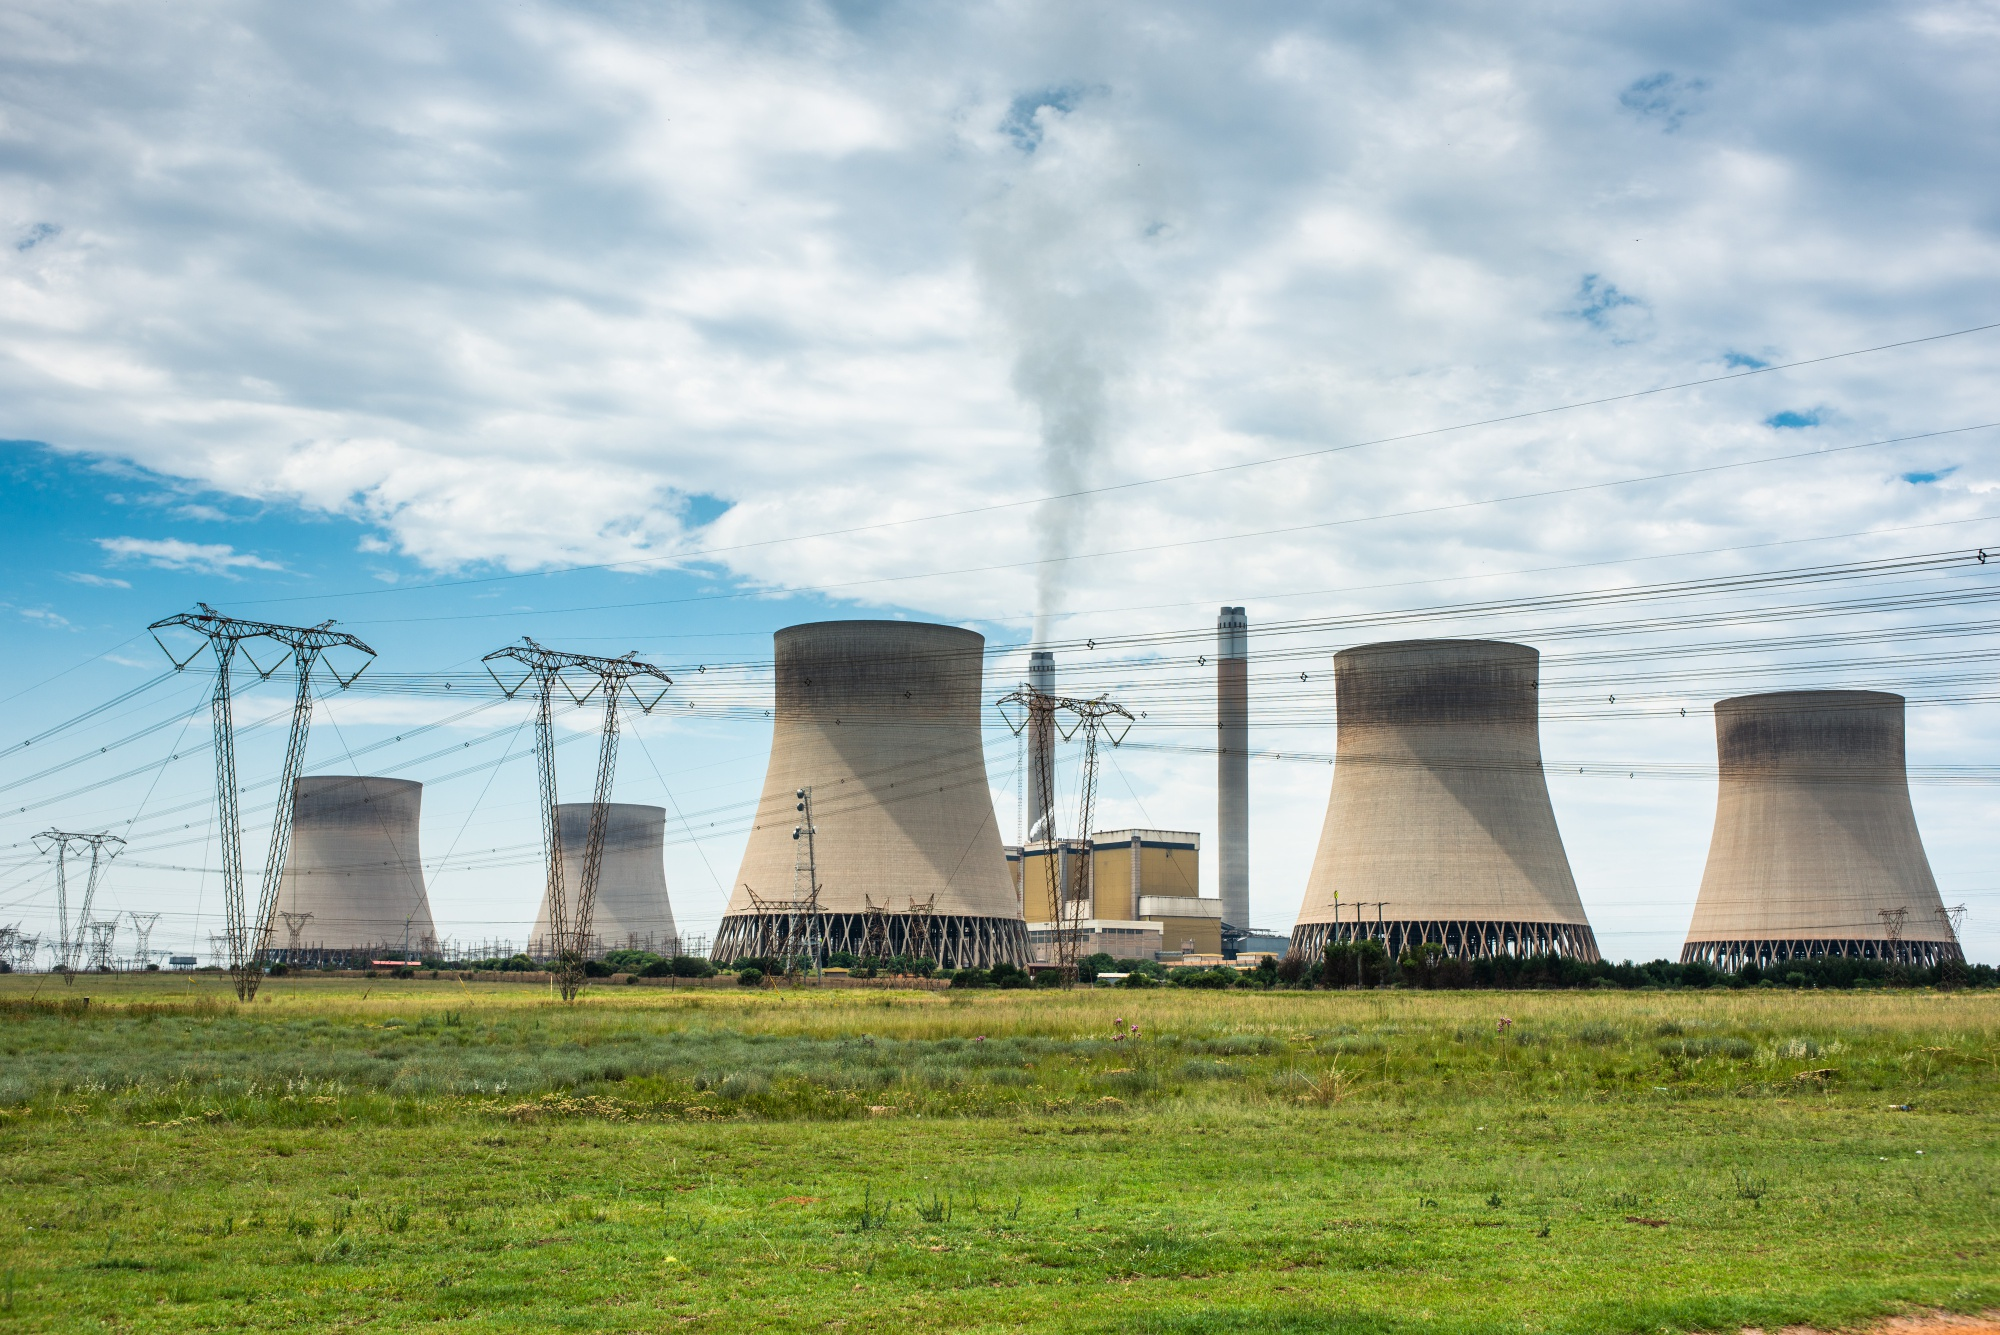 S. Africa Sued for Eskom, Sasol Air Pollution in Coal Belt - Bloomberg